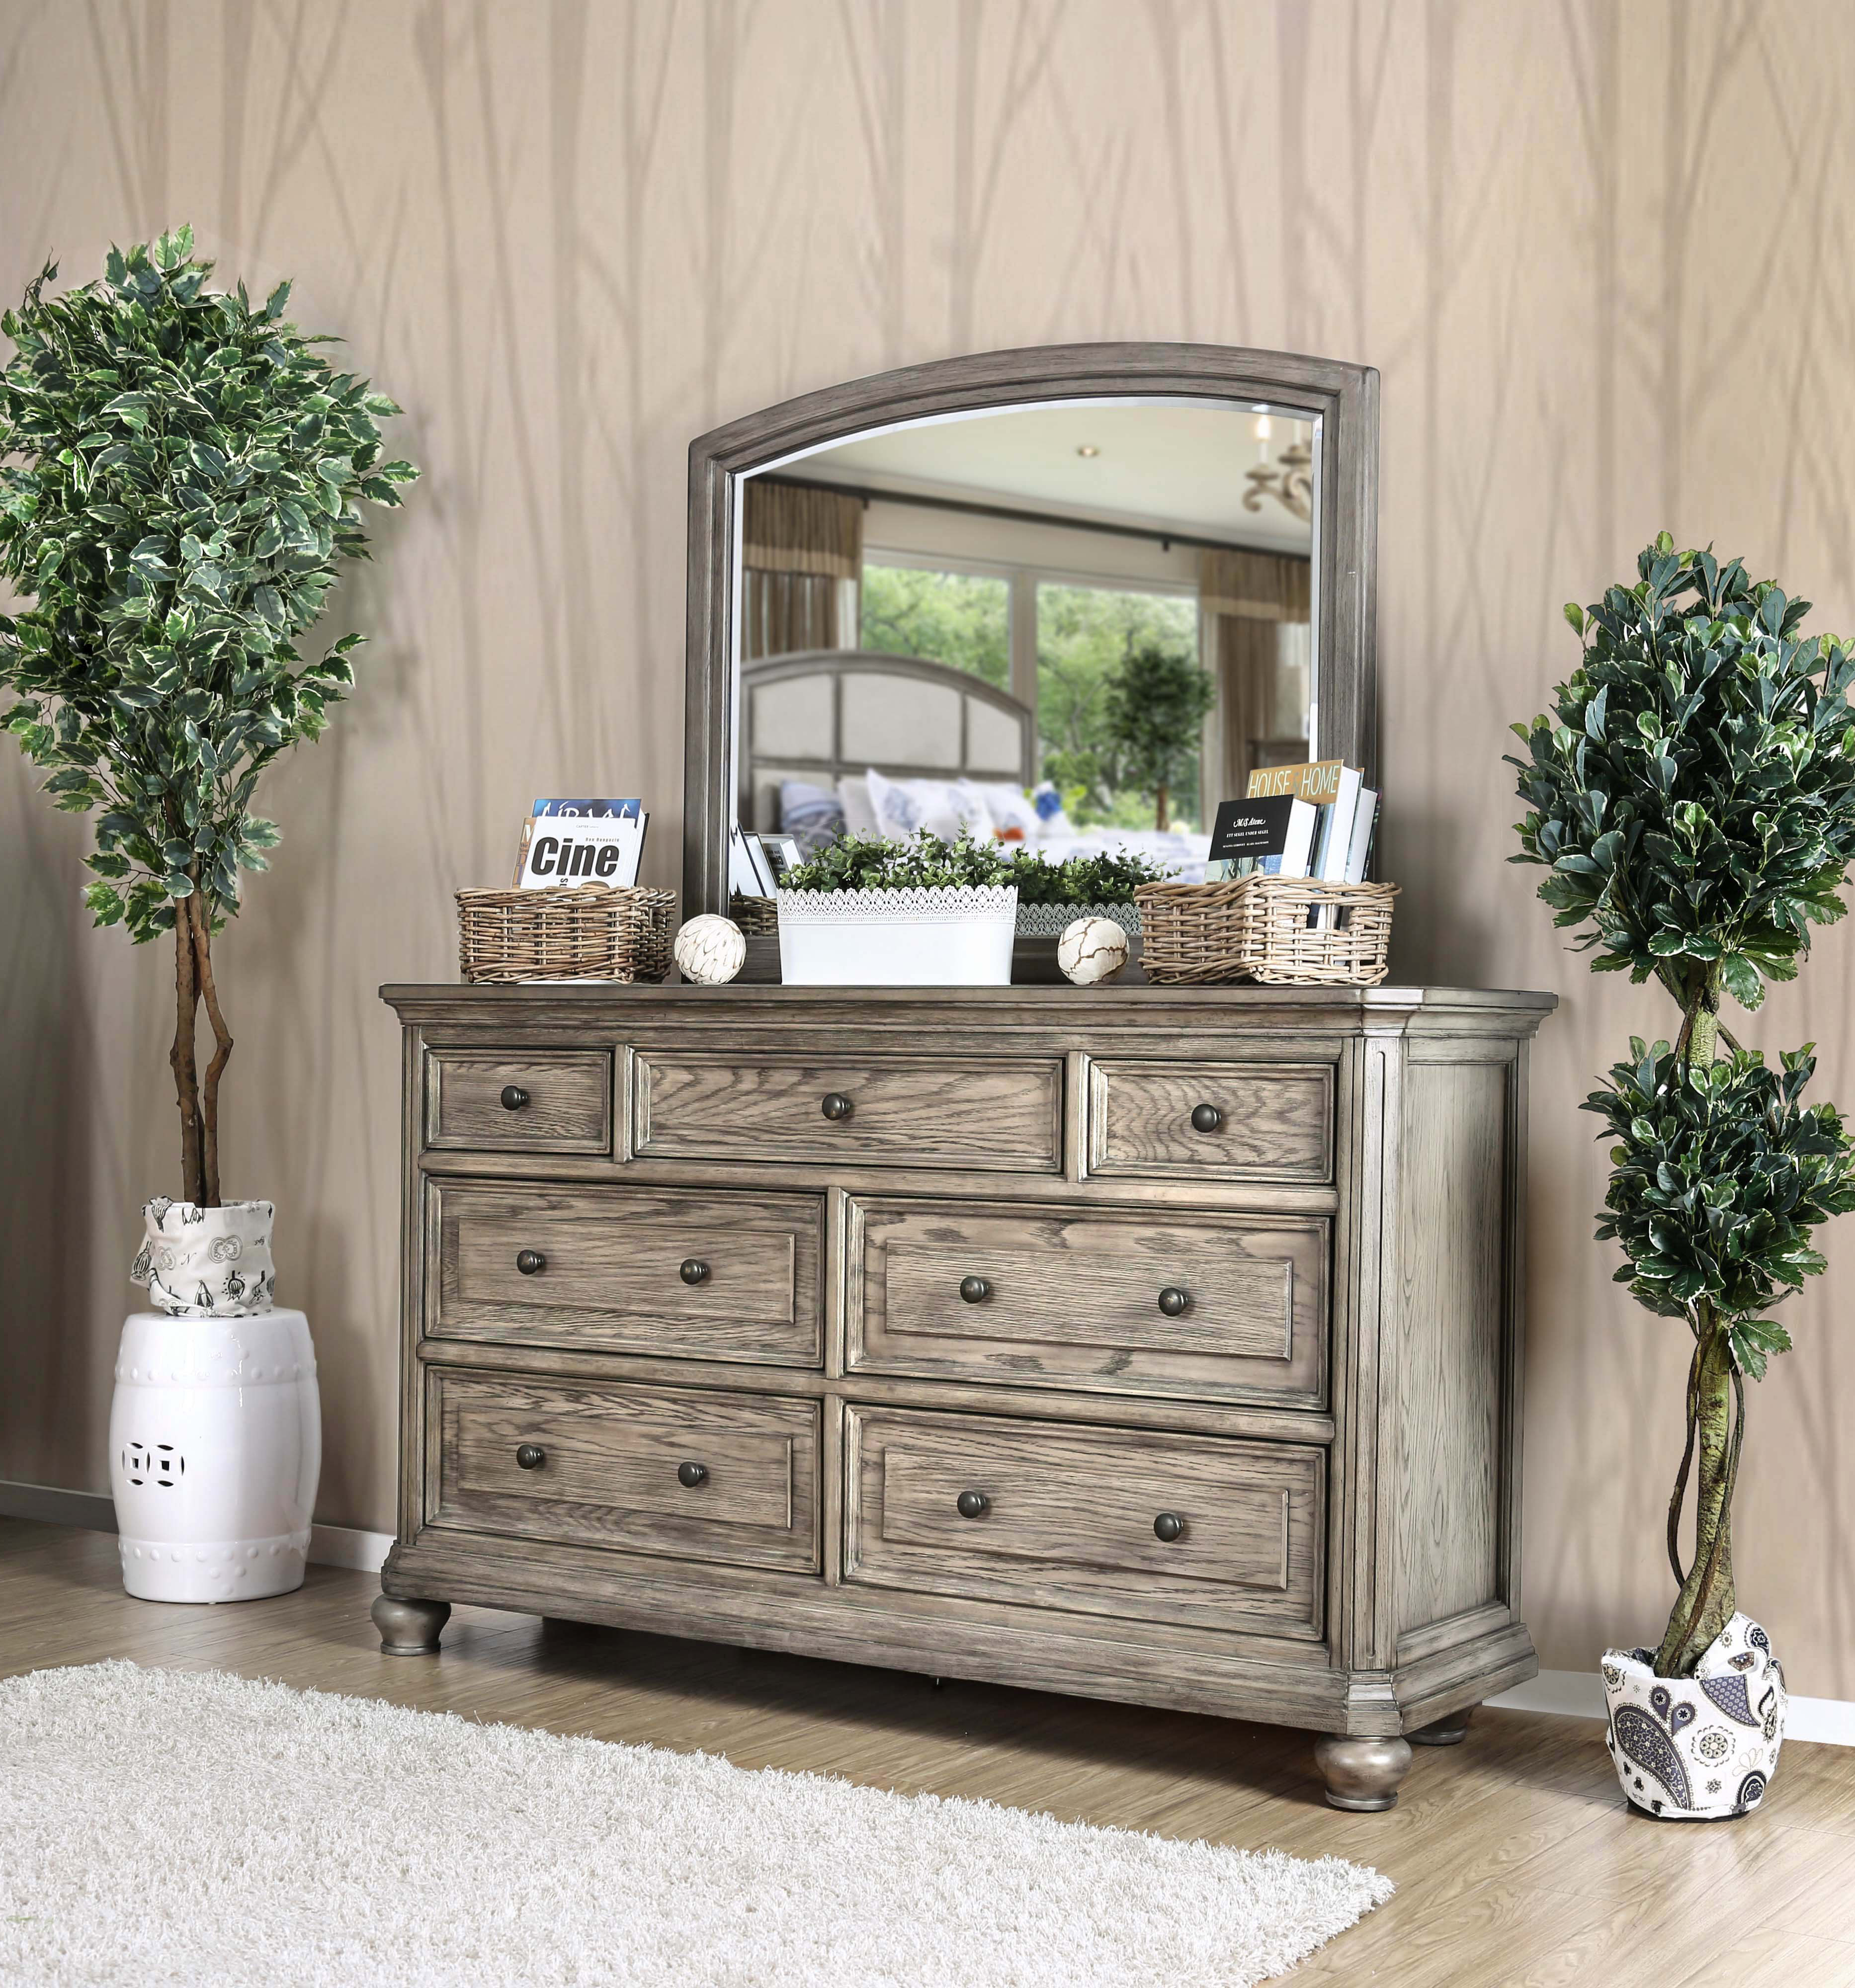 Furniture of america kineth rustic dresser and mirror set wire brushed gray walmart com